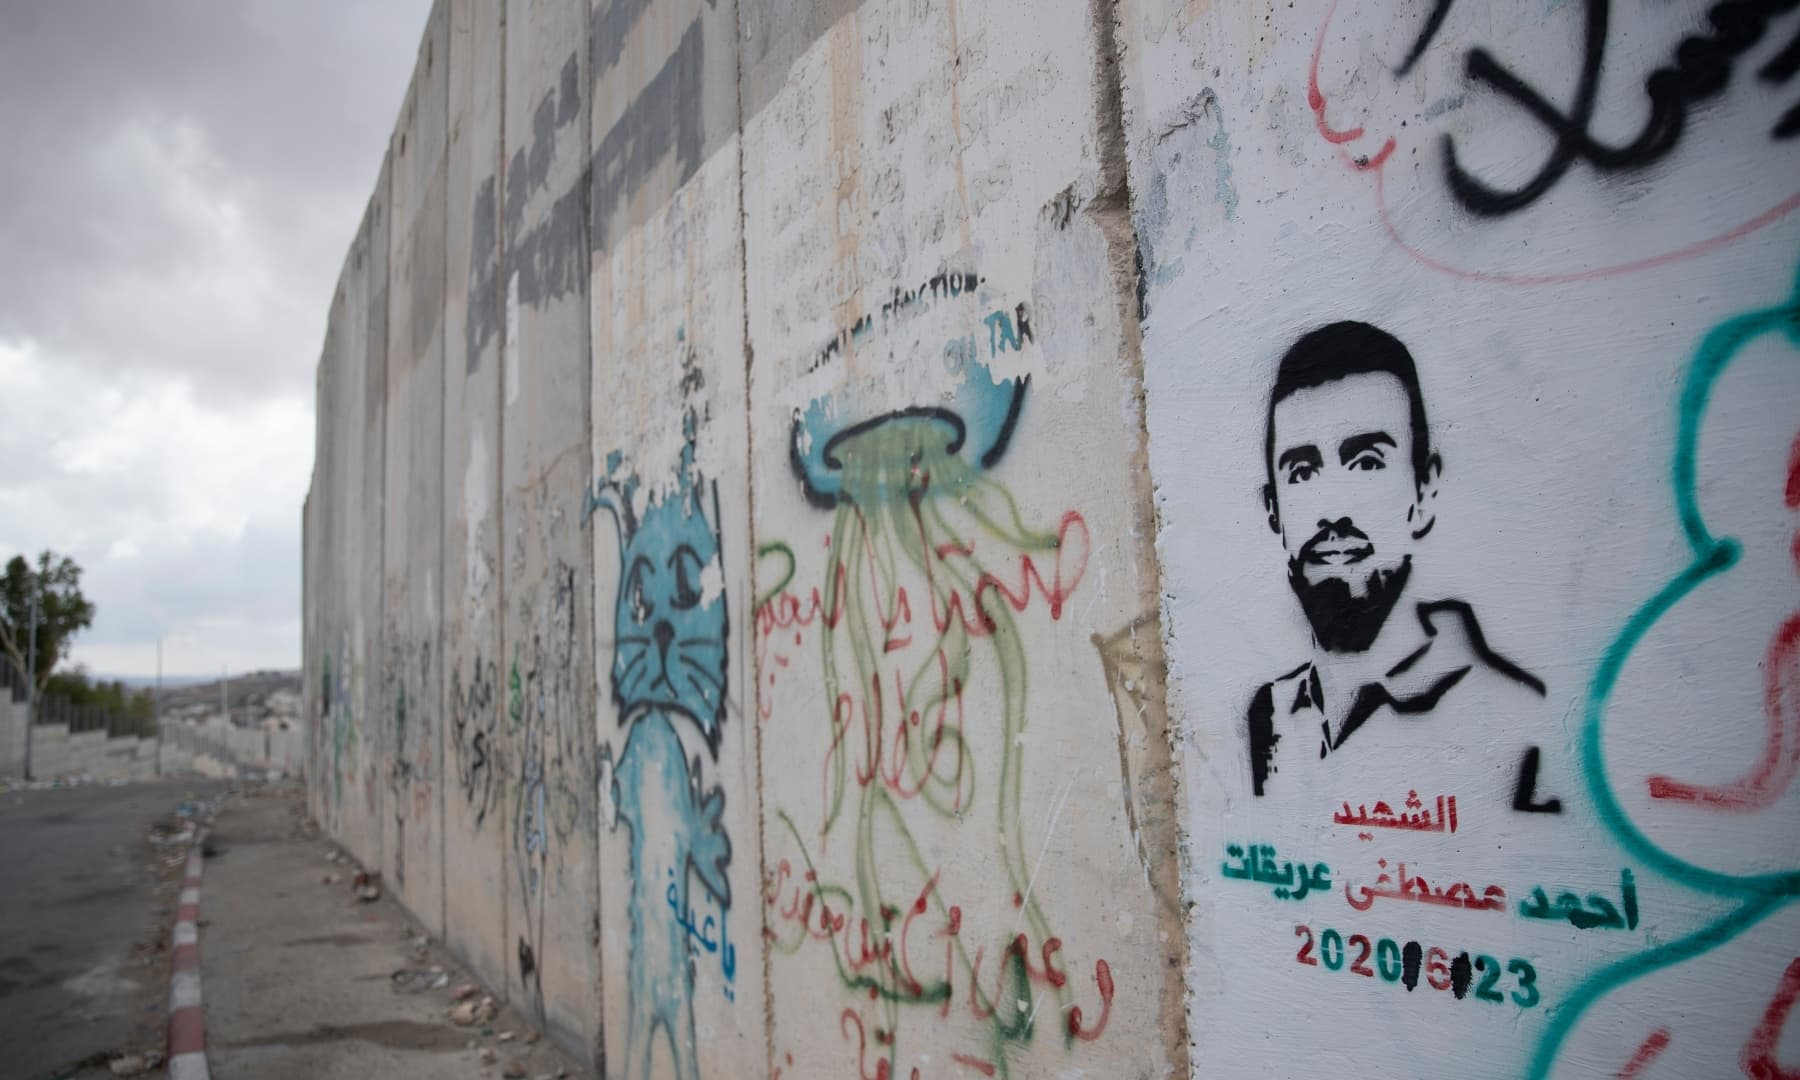 """A graffiti that depicts Ahmed Erekat, who was shot dead by Israeli forces at a West Bank checkpoint last year and held his body after, and reads """"Martyr Ahmed Erekat,"""" at a section of the Israeli separation wall, in the village of Abu Dis, South of Ramallah, Palestine on September 24, 2021. — AP"""